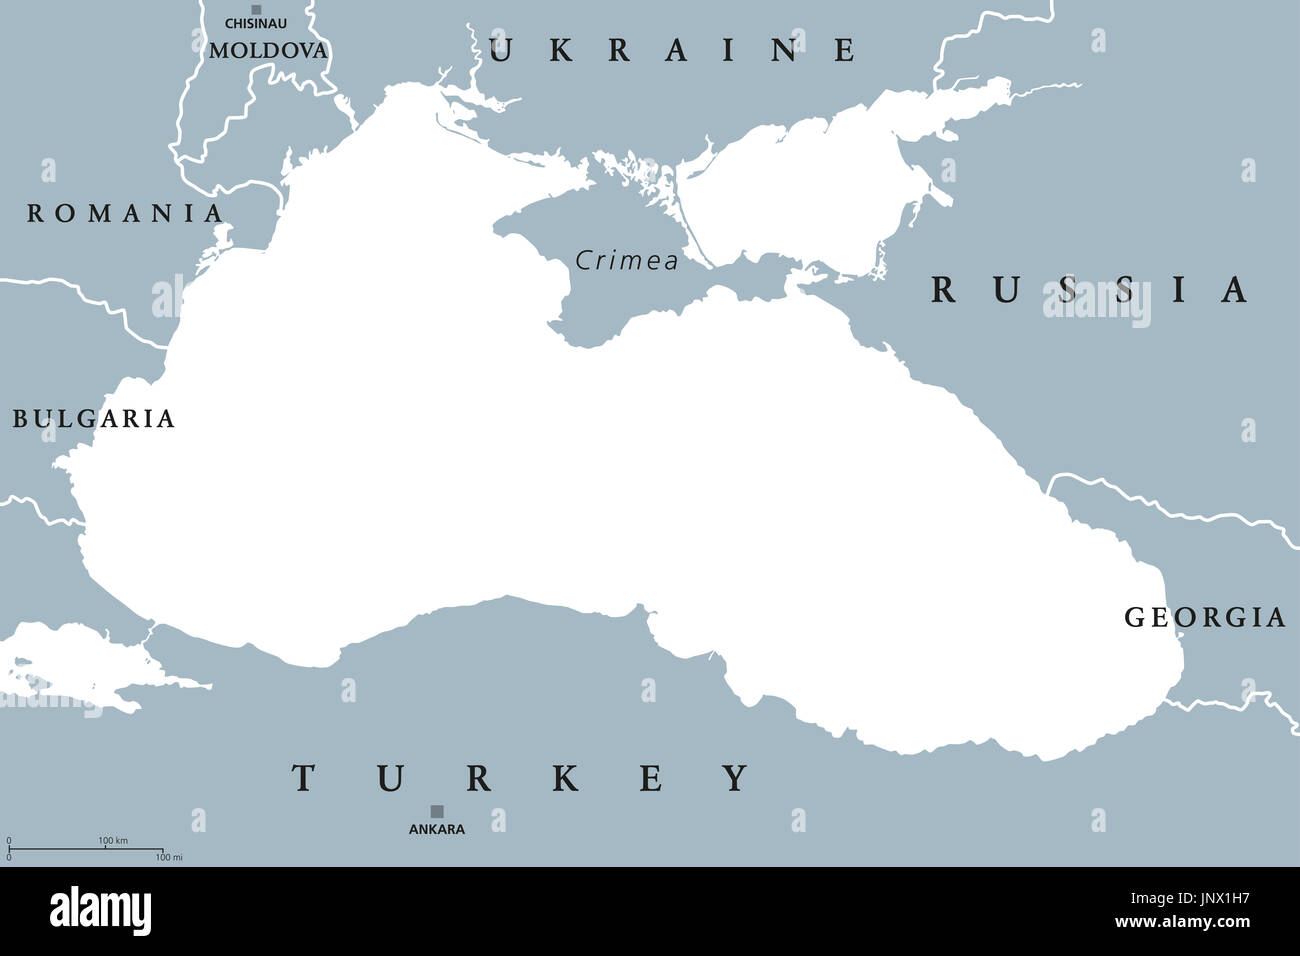 Black Sea and Sea of Azov region political map with capitals and borders. Body of water between Eastern Europe and Western Asia. Illustration. - Stock Image